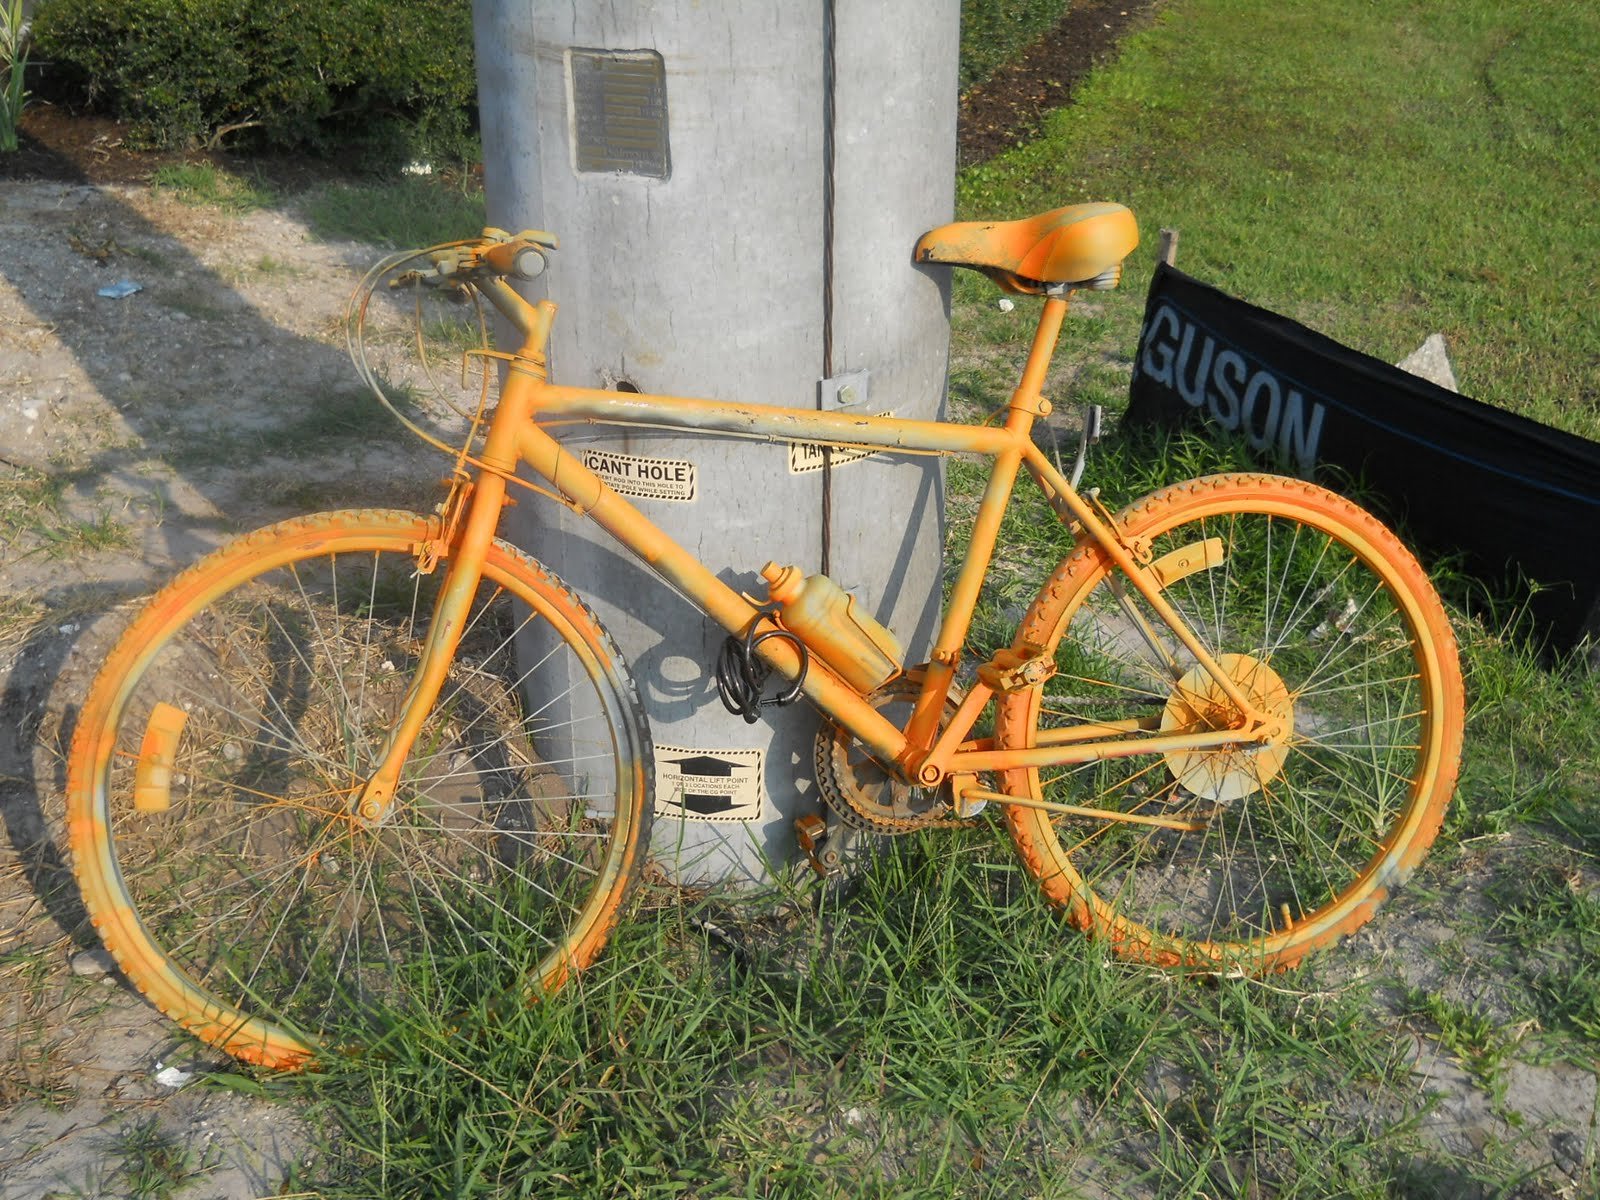 4a2bb2250ad These orange-painted bicycles have popped up around the Panera Bread/Best  Buy shopping center along Bruce B. Downs Blvd. in New Tampa.